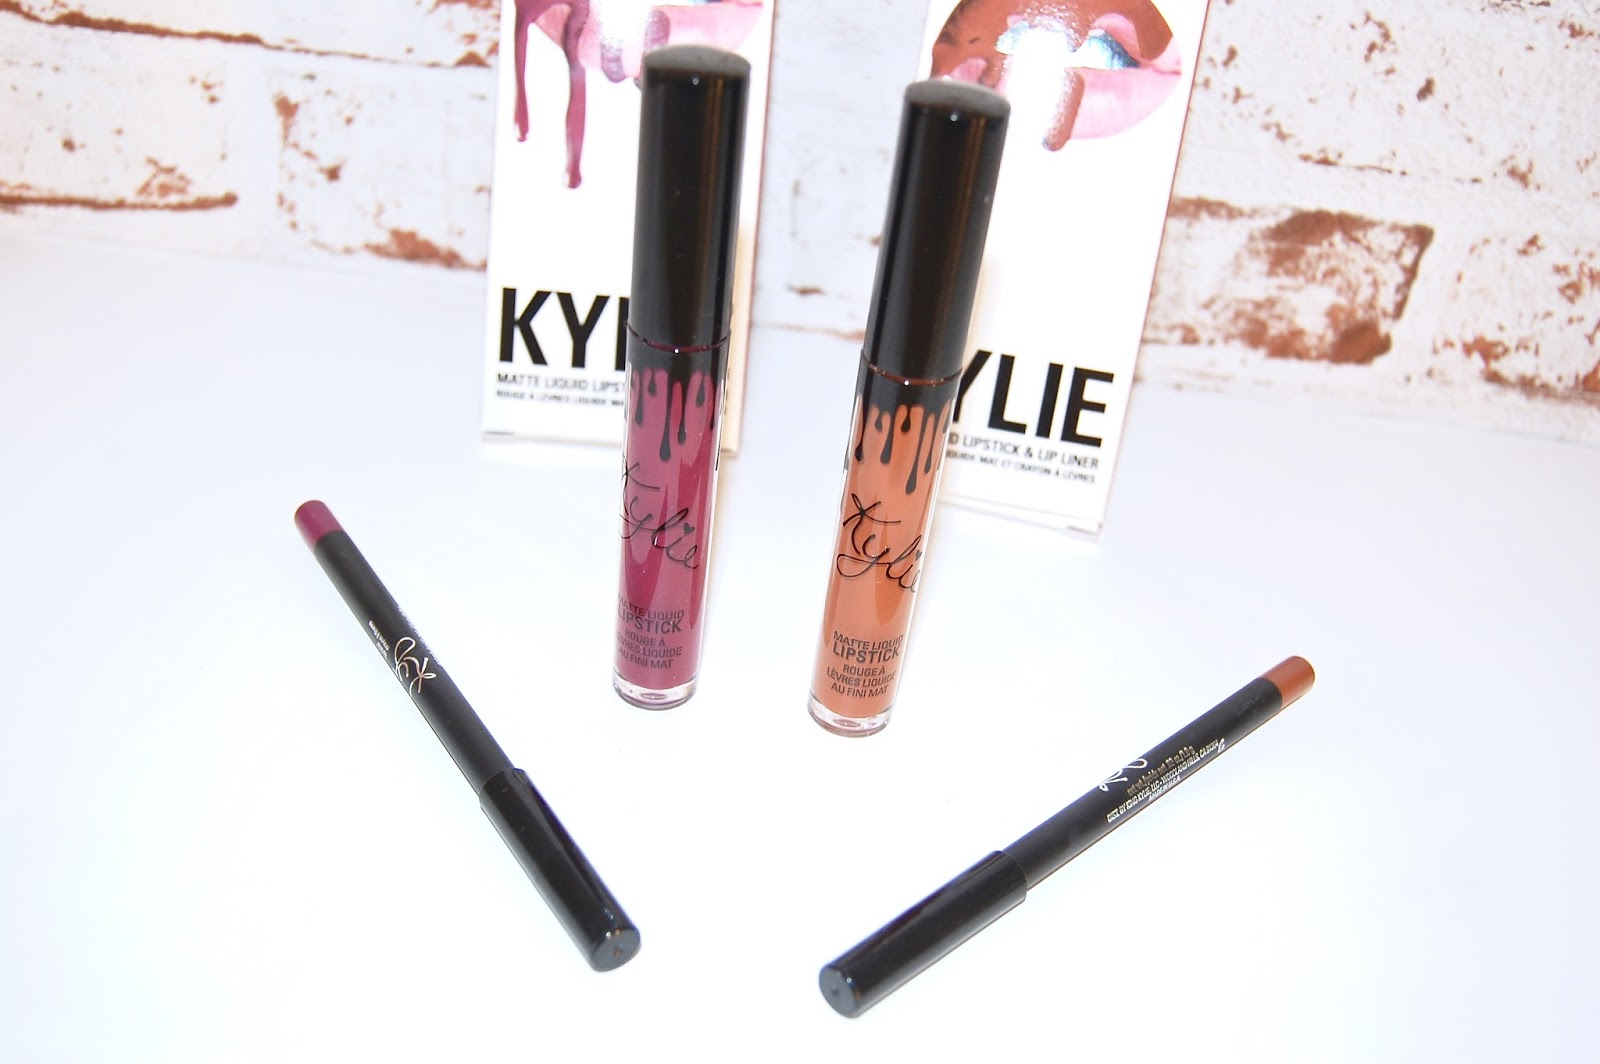 Pumpkin and Spice Kylie Cosmetics Lip Kits